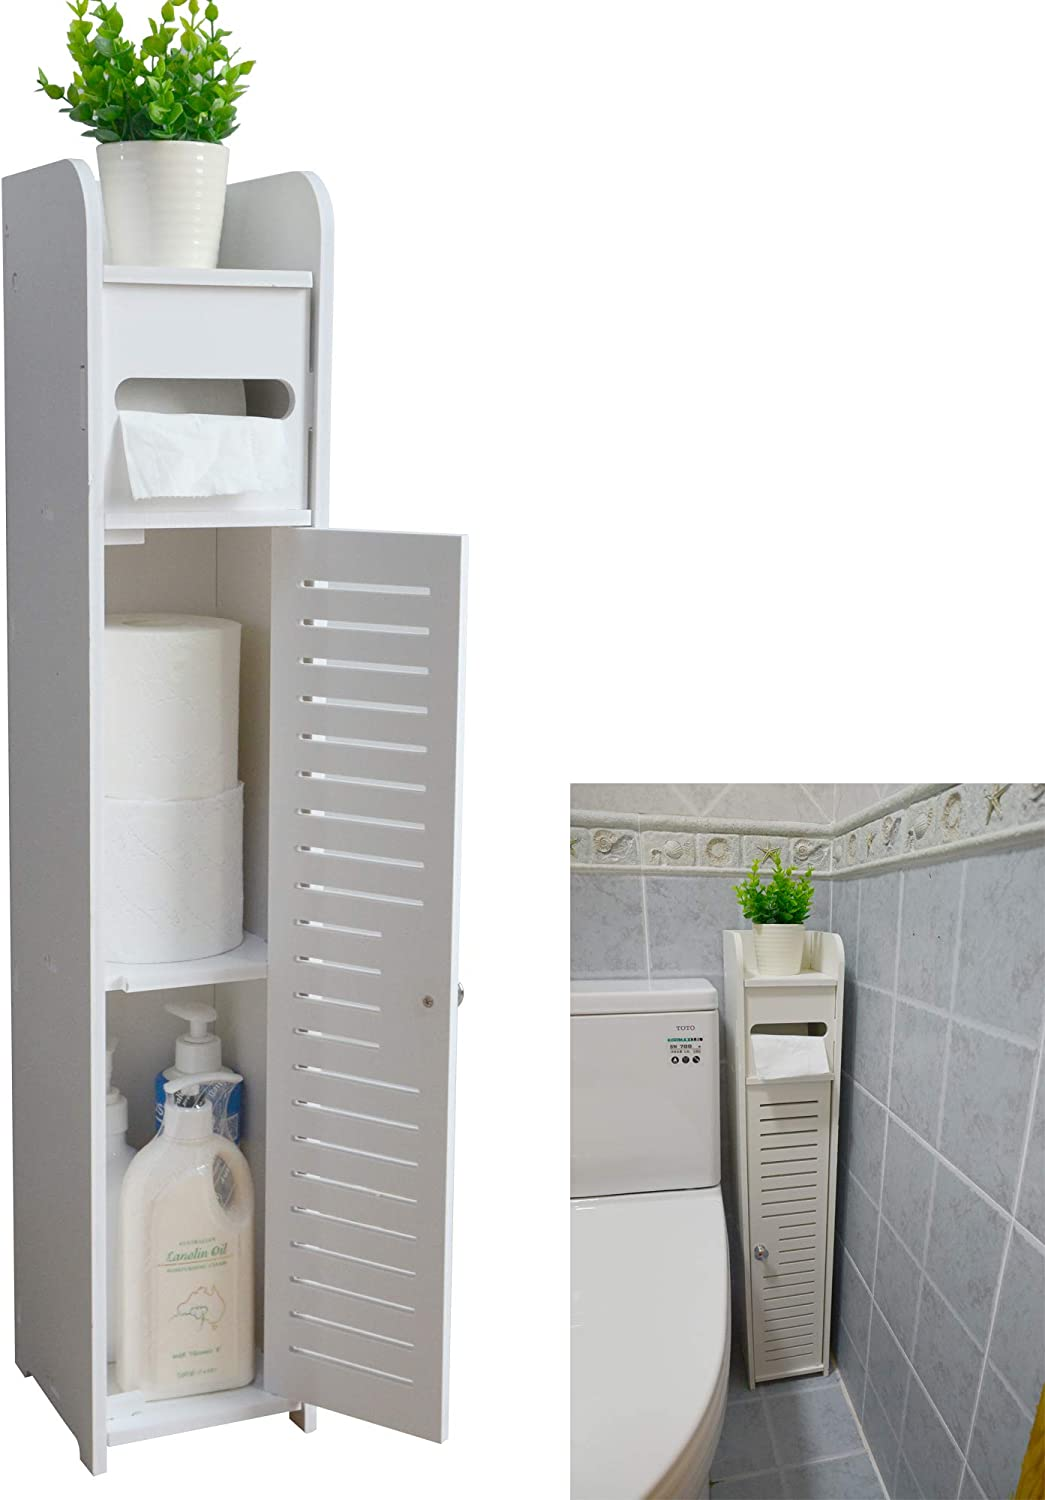 AOJEZOR Small Bathroom Storage Corner Floor Cabinet with Doors and Shelves, Thin Toilet Vanity Cabinet, Narrow Bath Sink Organizer, Towel Storage Shelf for Paper Holder, White: Home & Kitchen